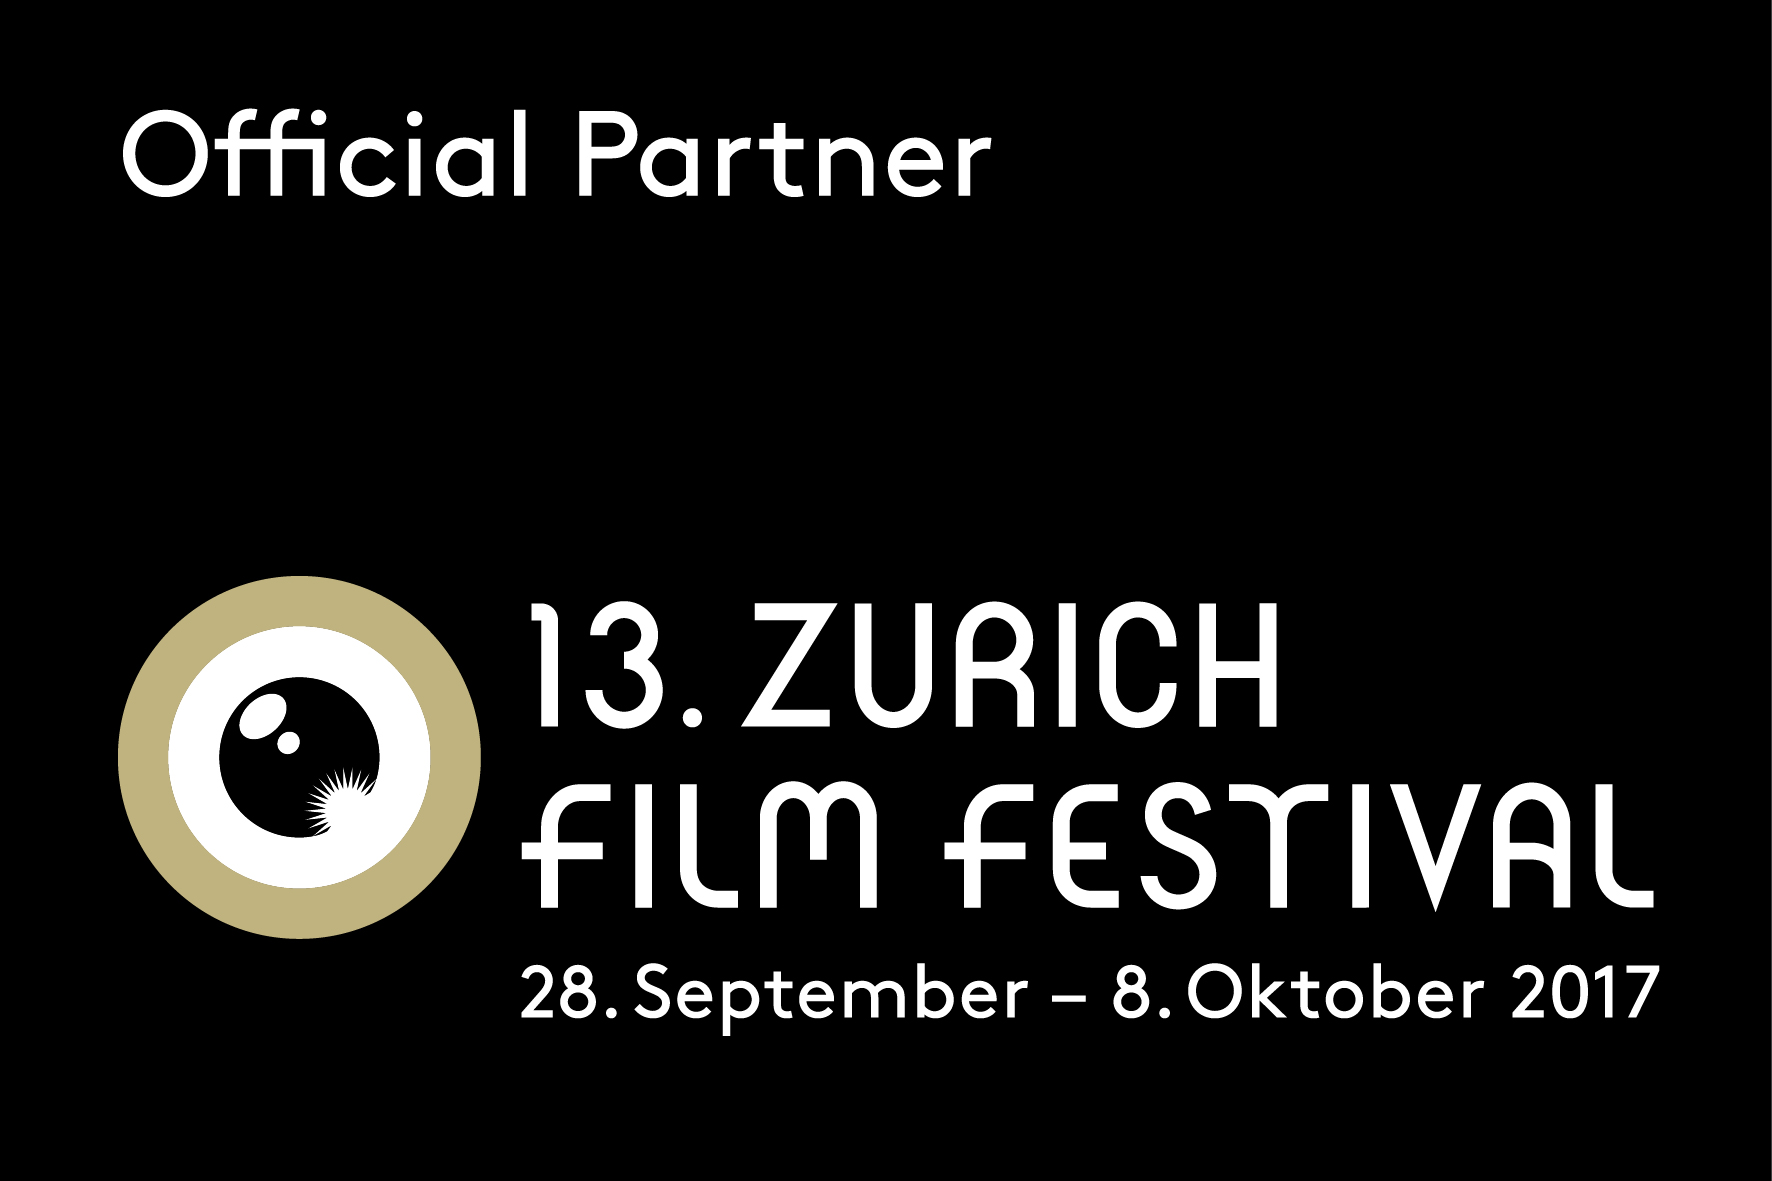 Official Partner 13. Zurich Film Festival